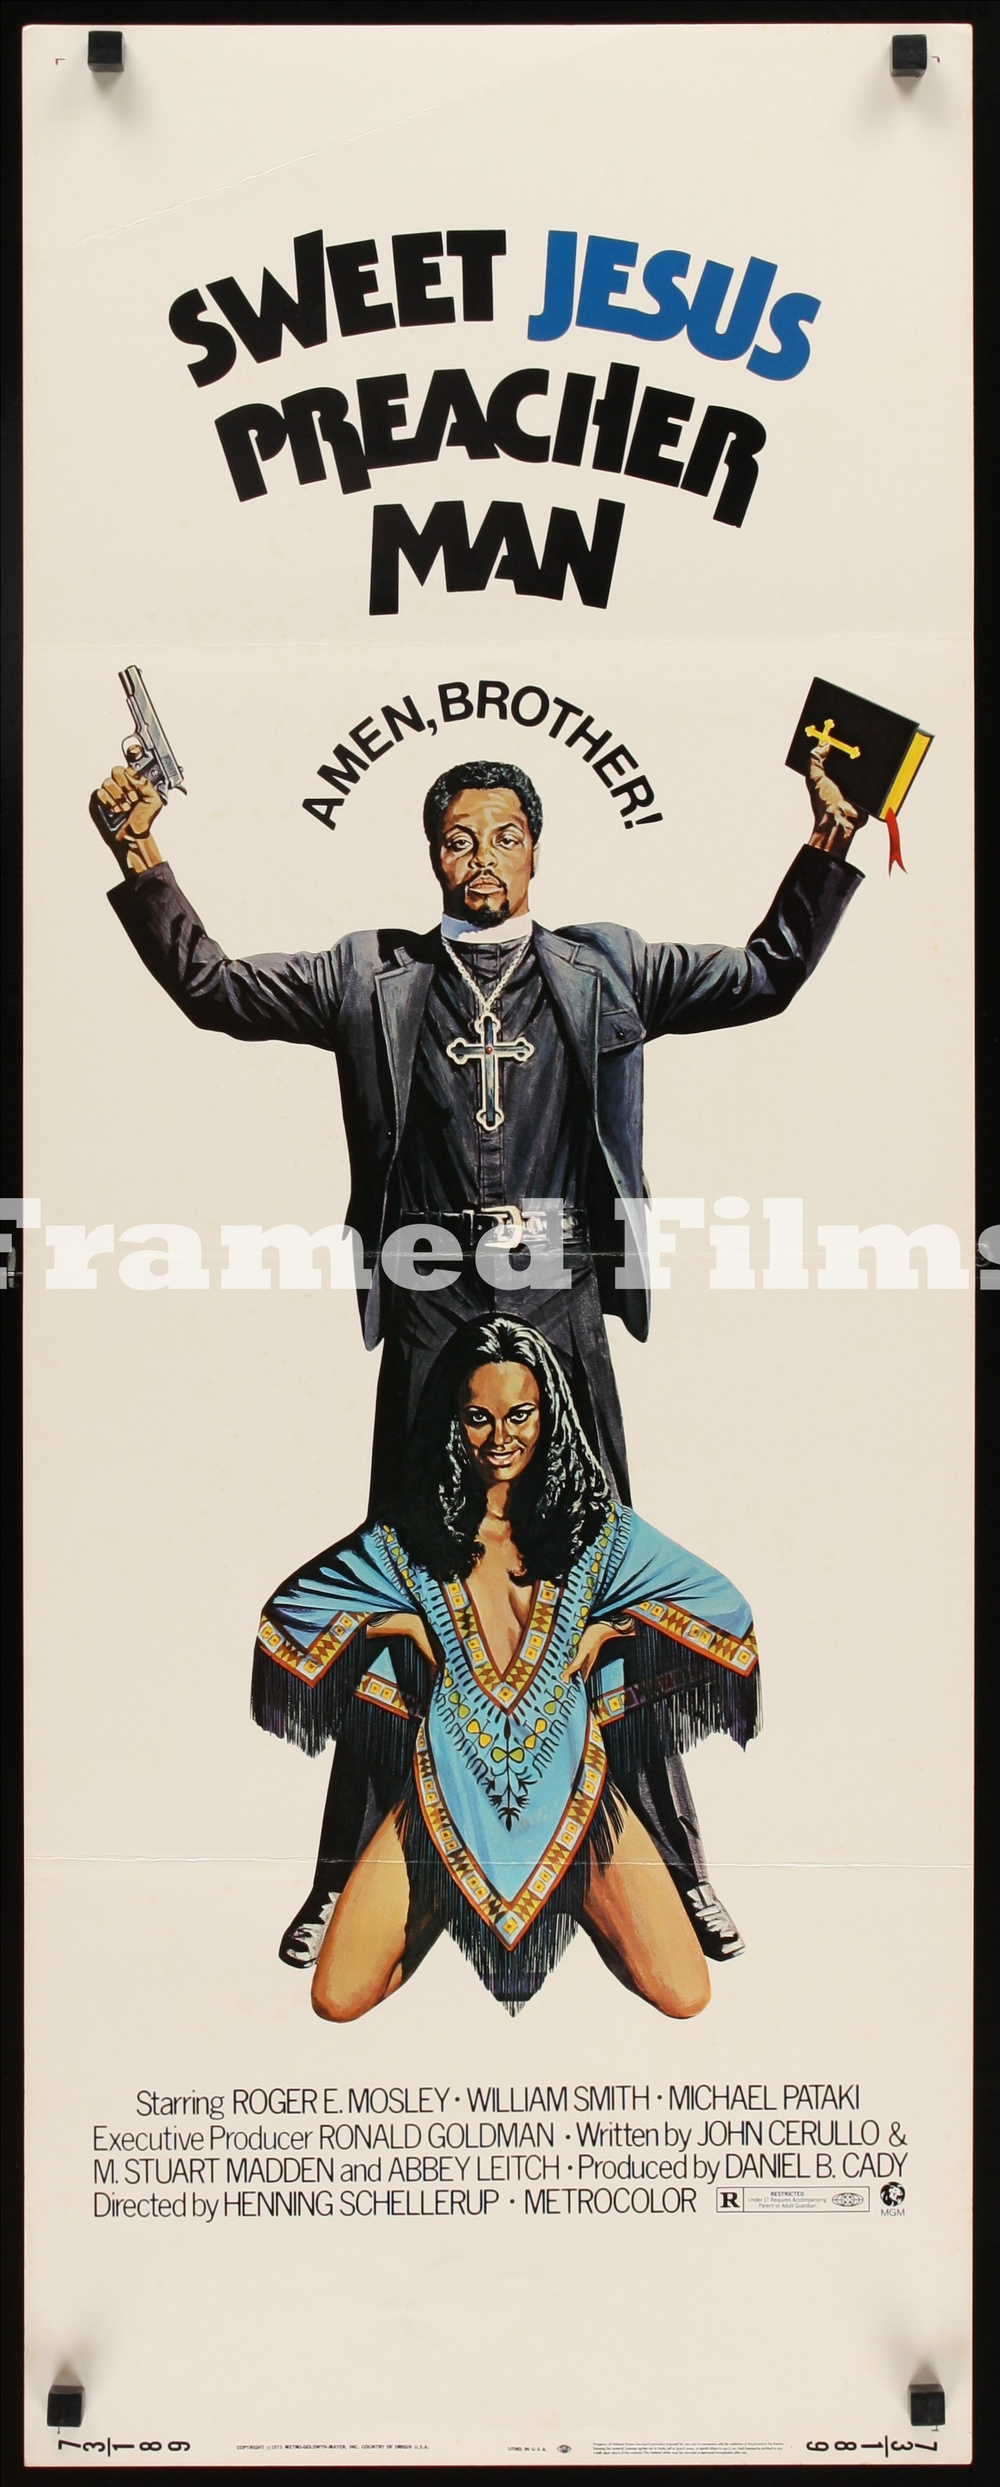 in_sweet_jesus_preacher_man_HP02906_L.jpg